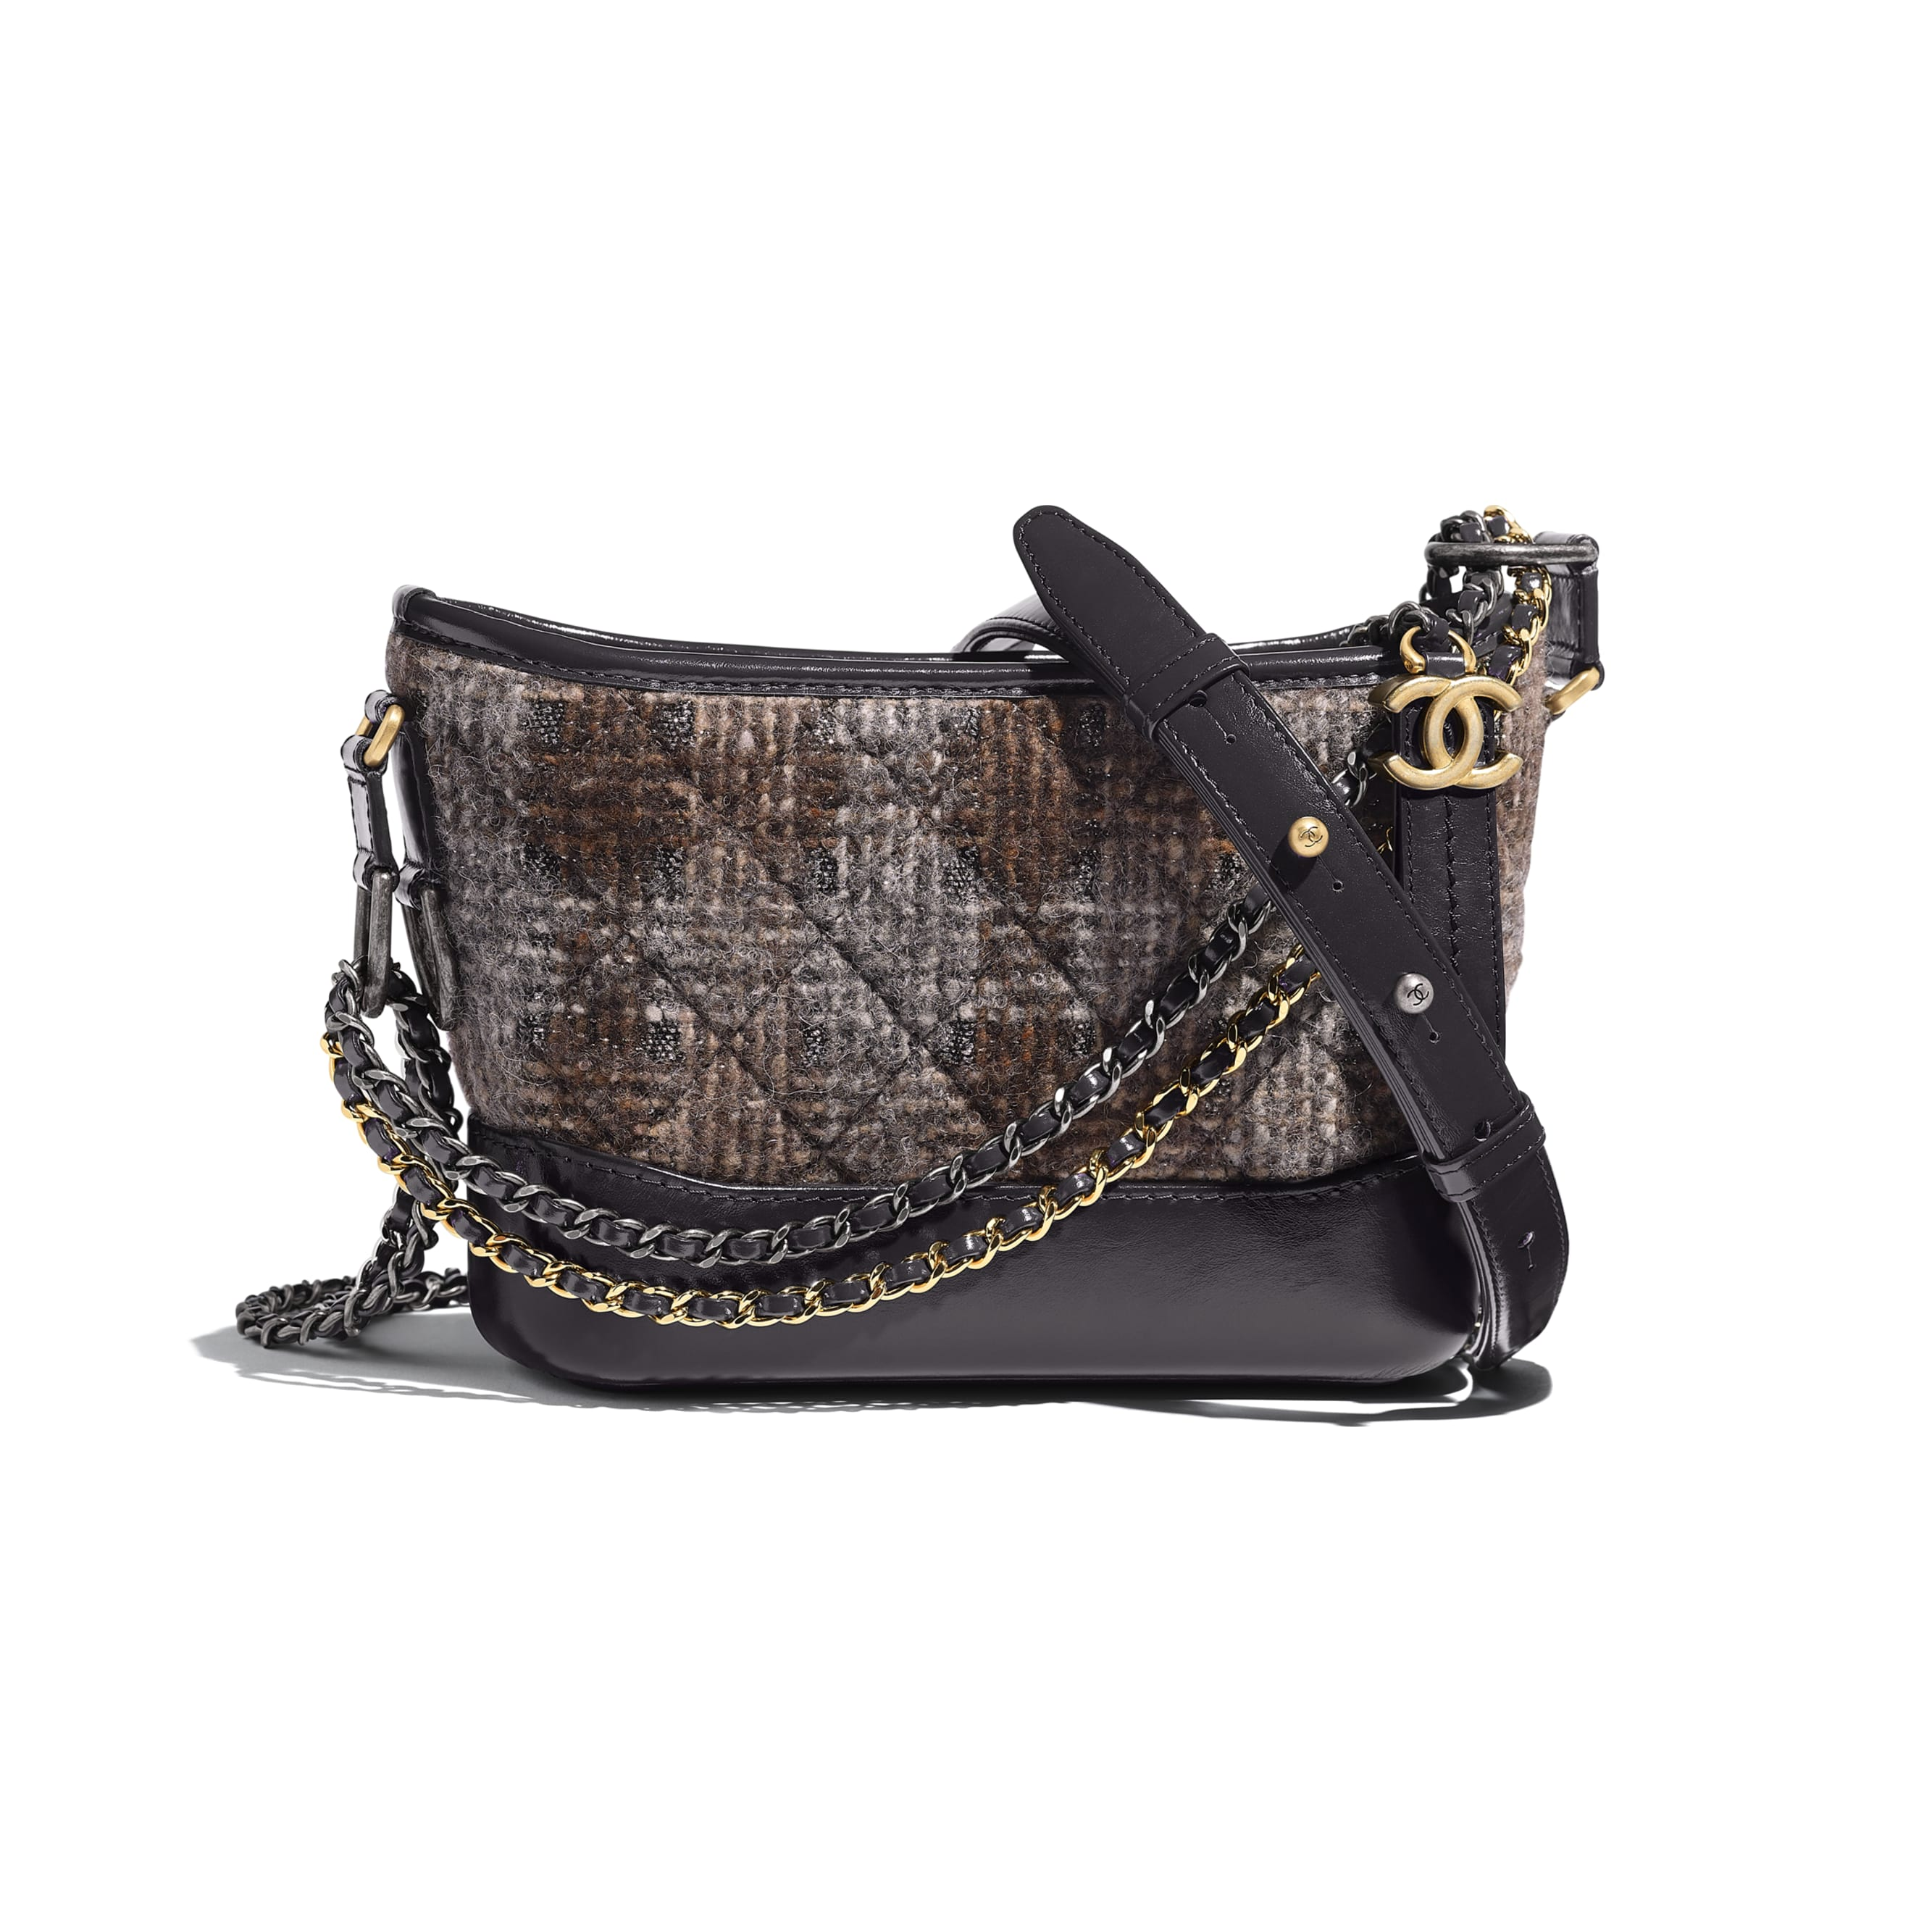 CHANEL'S GABRIELLE Small Hobo Bag - Gray, Brown & Silver - Tweed, Calfskin, Gold-Tone & Silver-Tone Metal - Default view - see standard sized version